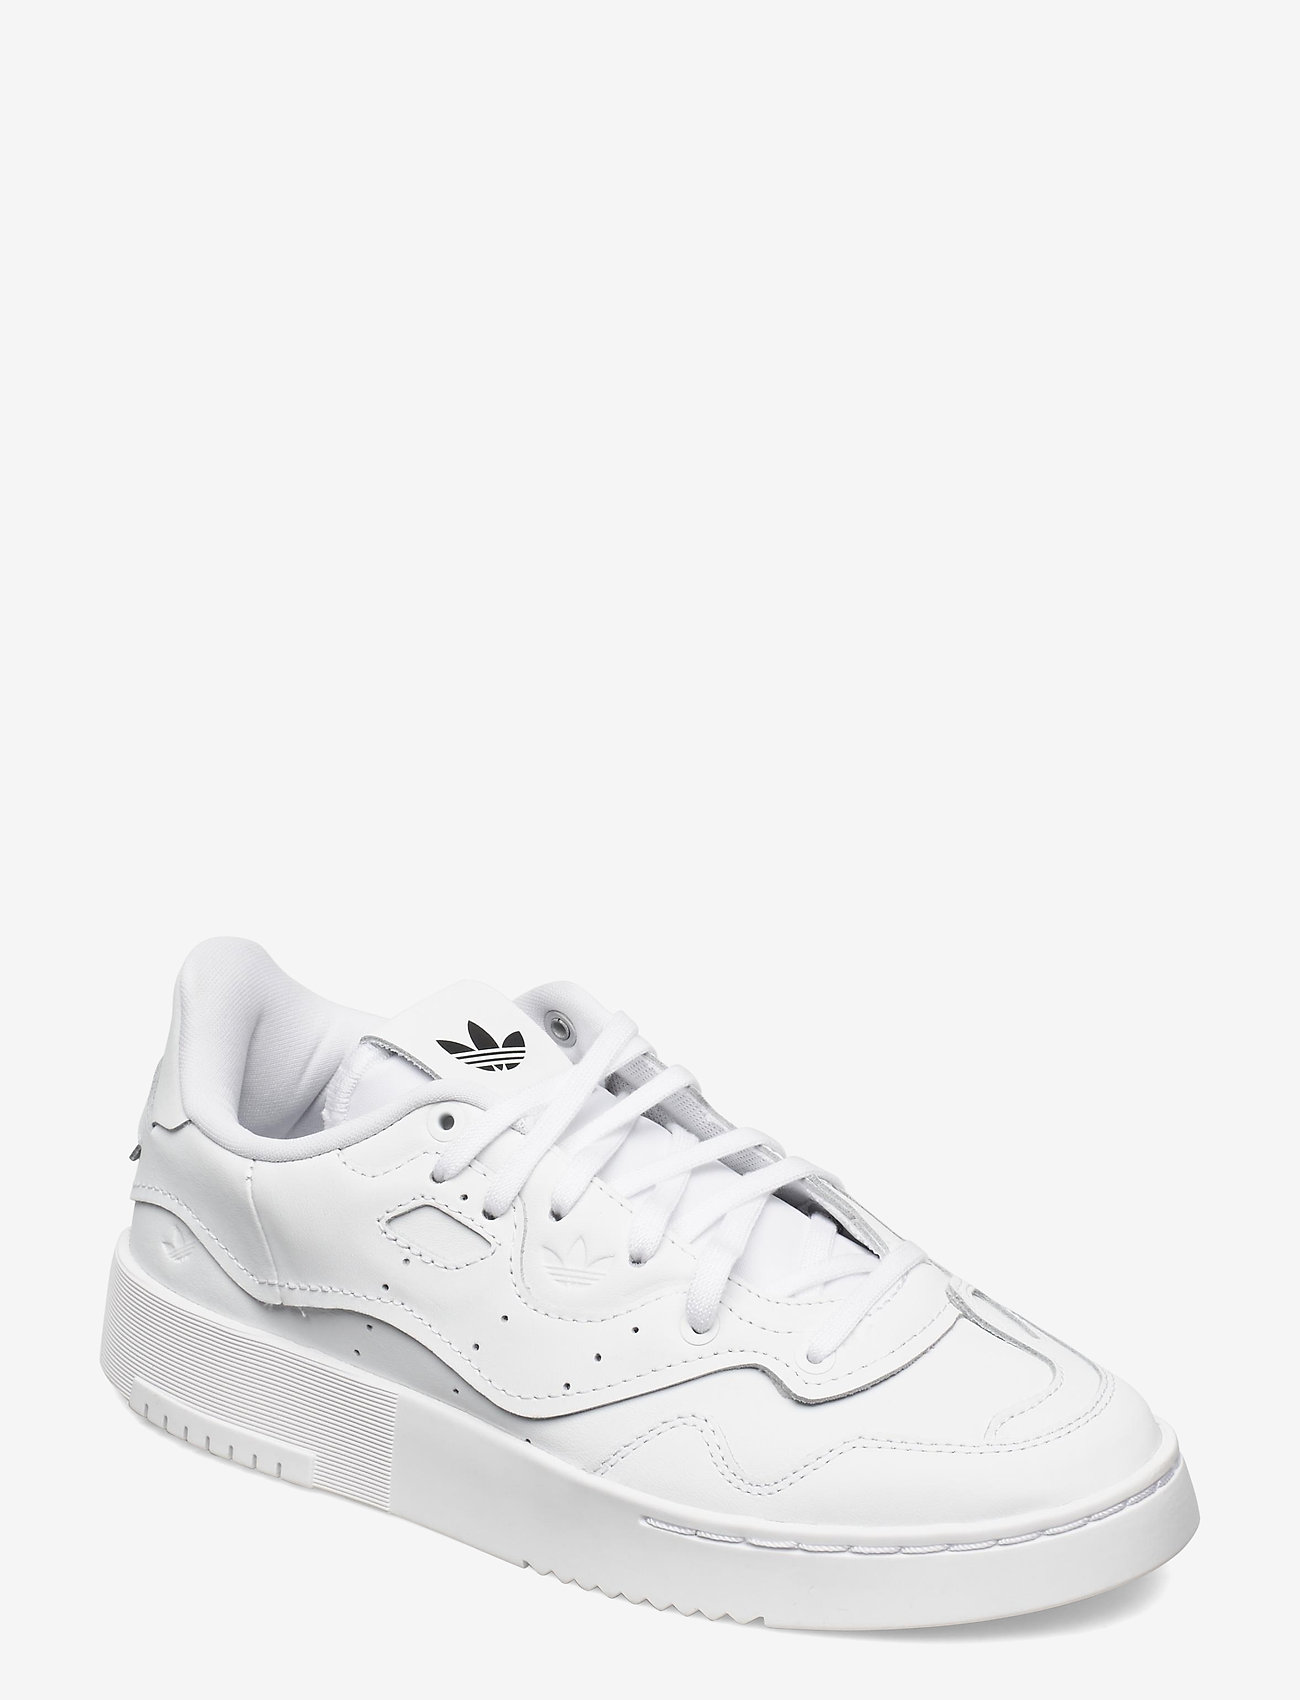 adidas Originals - SUPERCOURT STYLE W - sneakers - ftwwht/ftwwht/cblack - 0